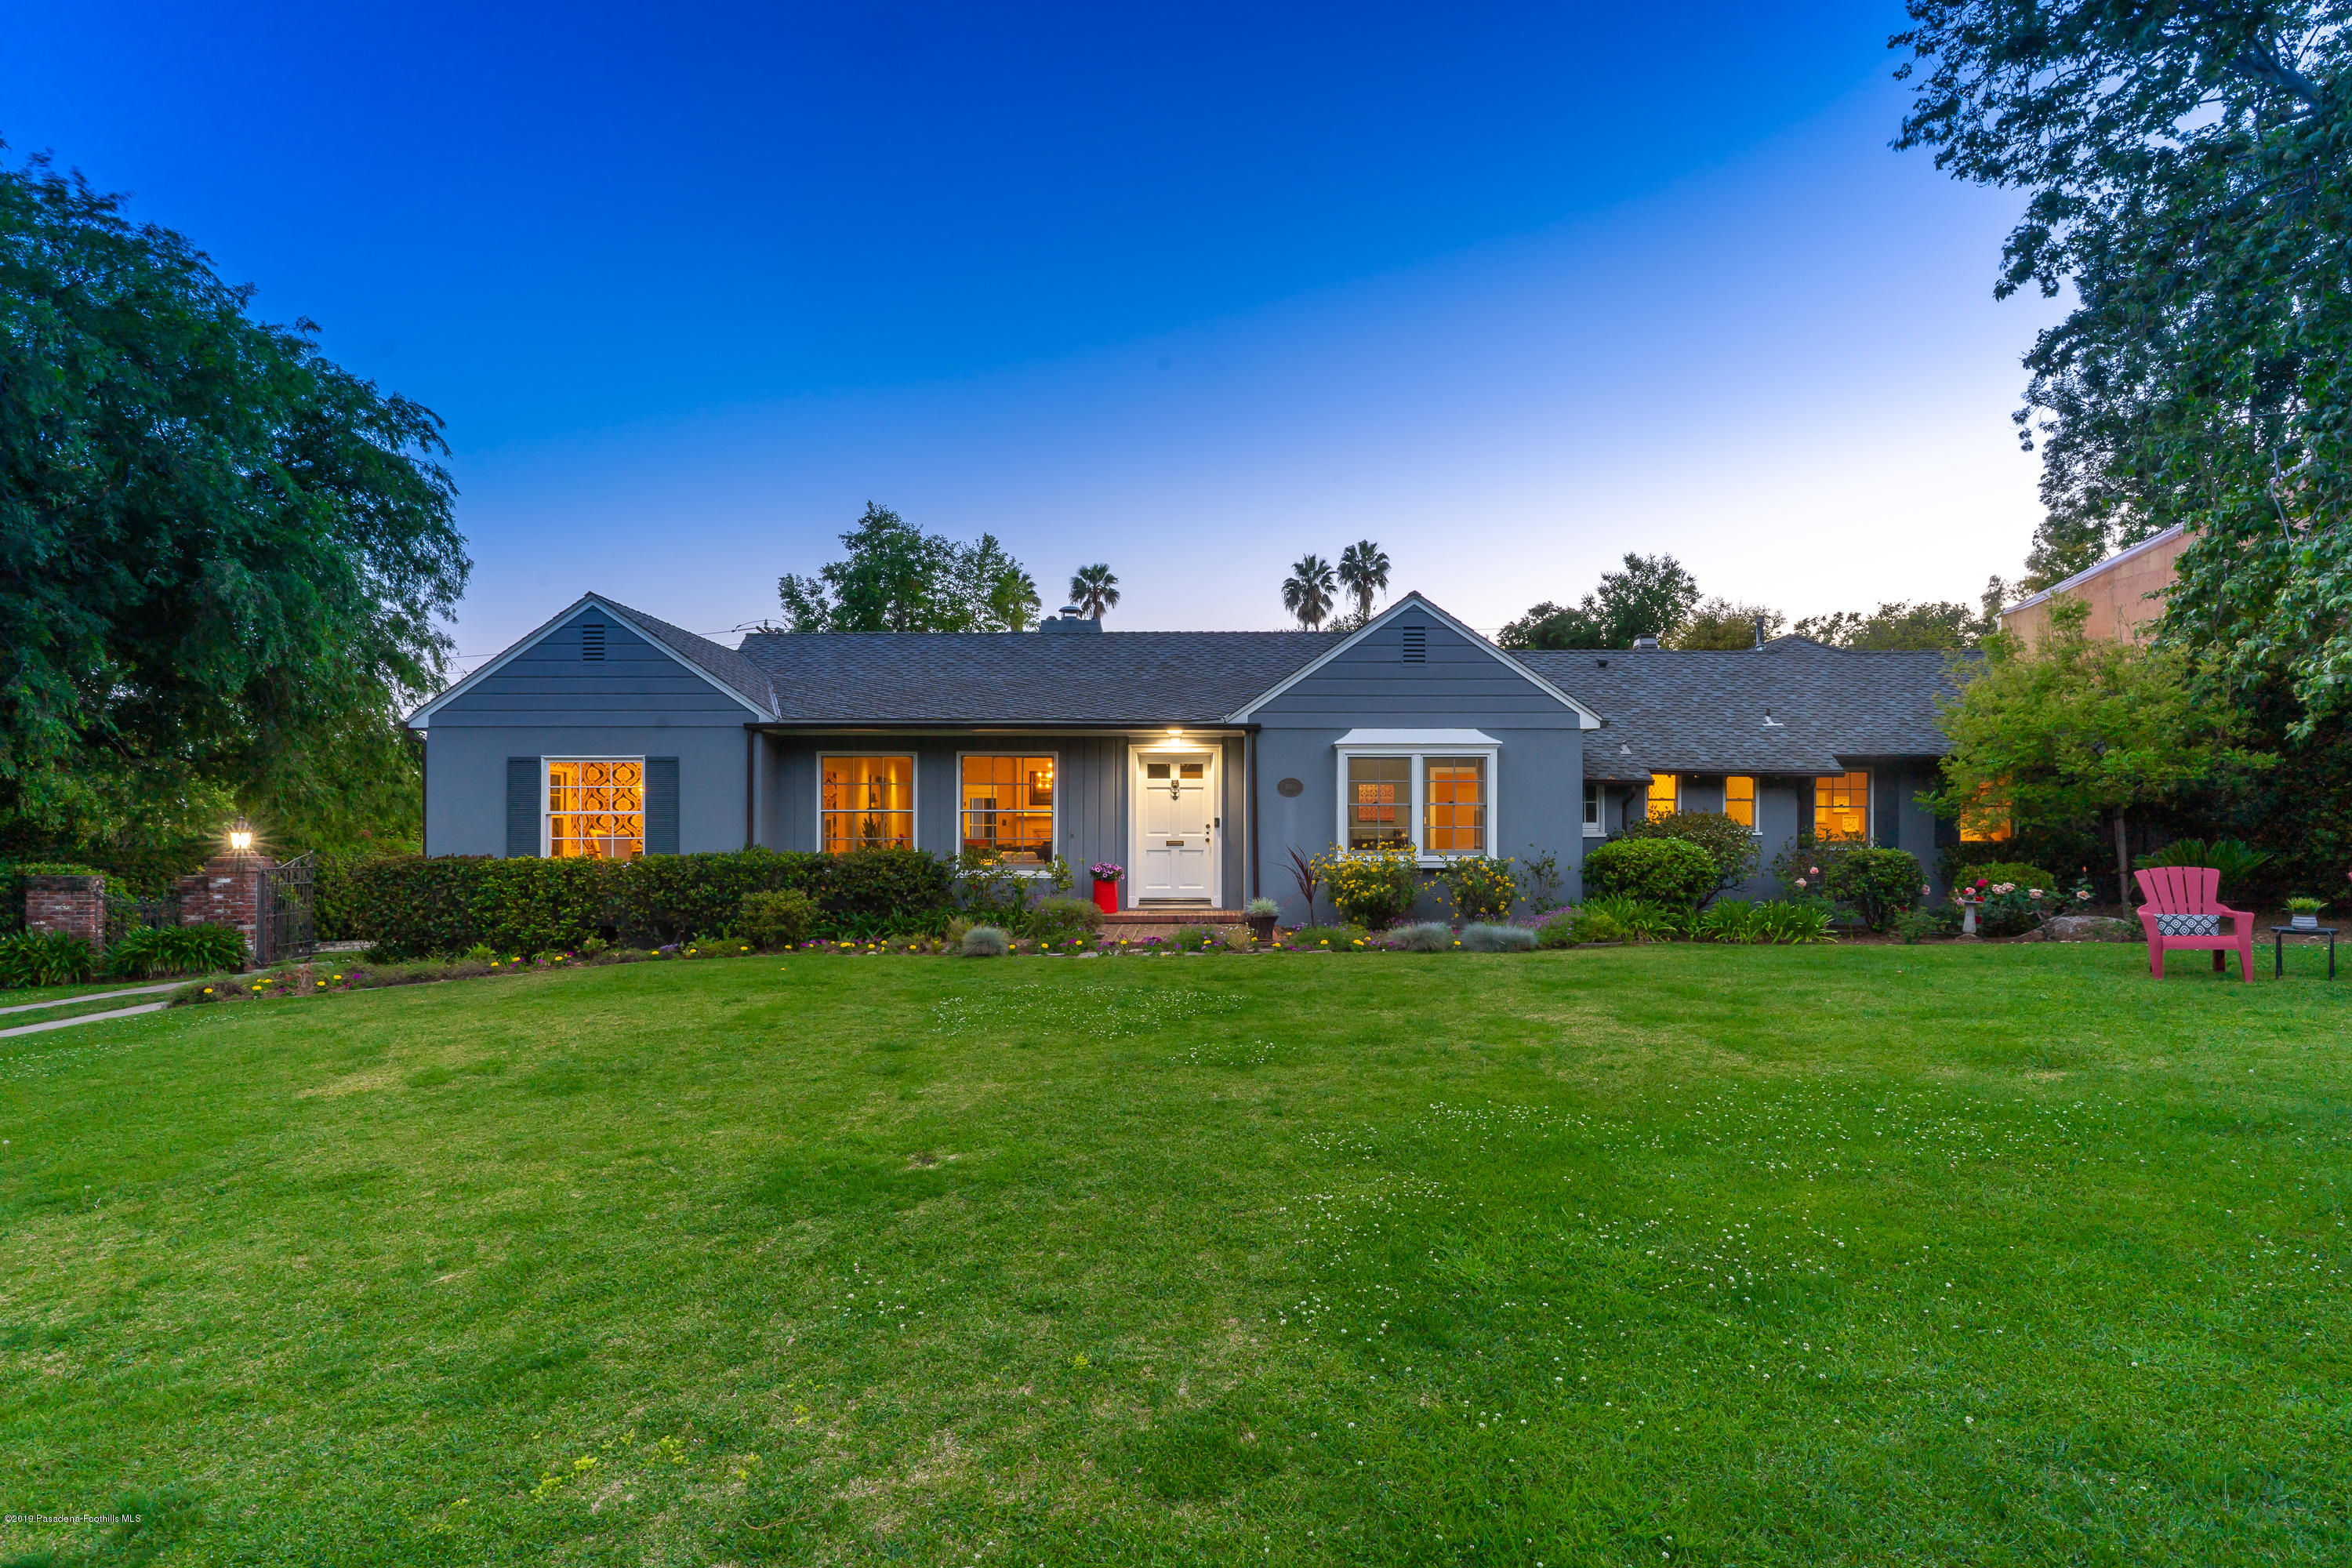 2010 Midwick Drive, Altadena in Los Angeles County, CA 91001 Home for Sale